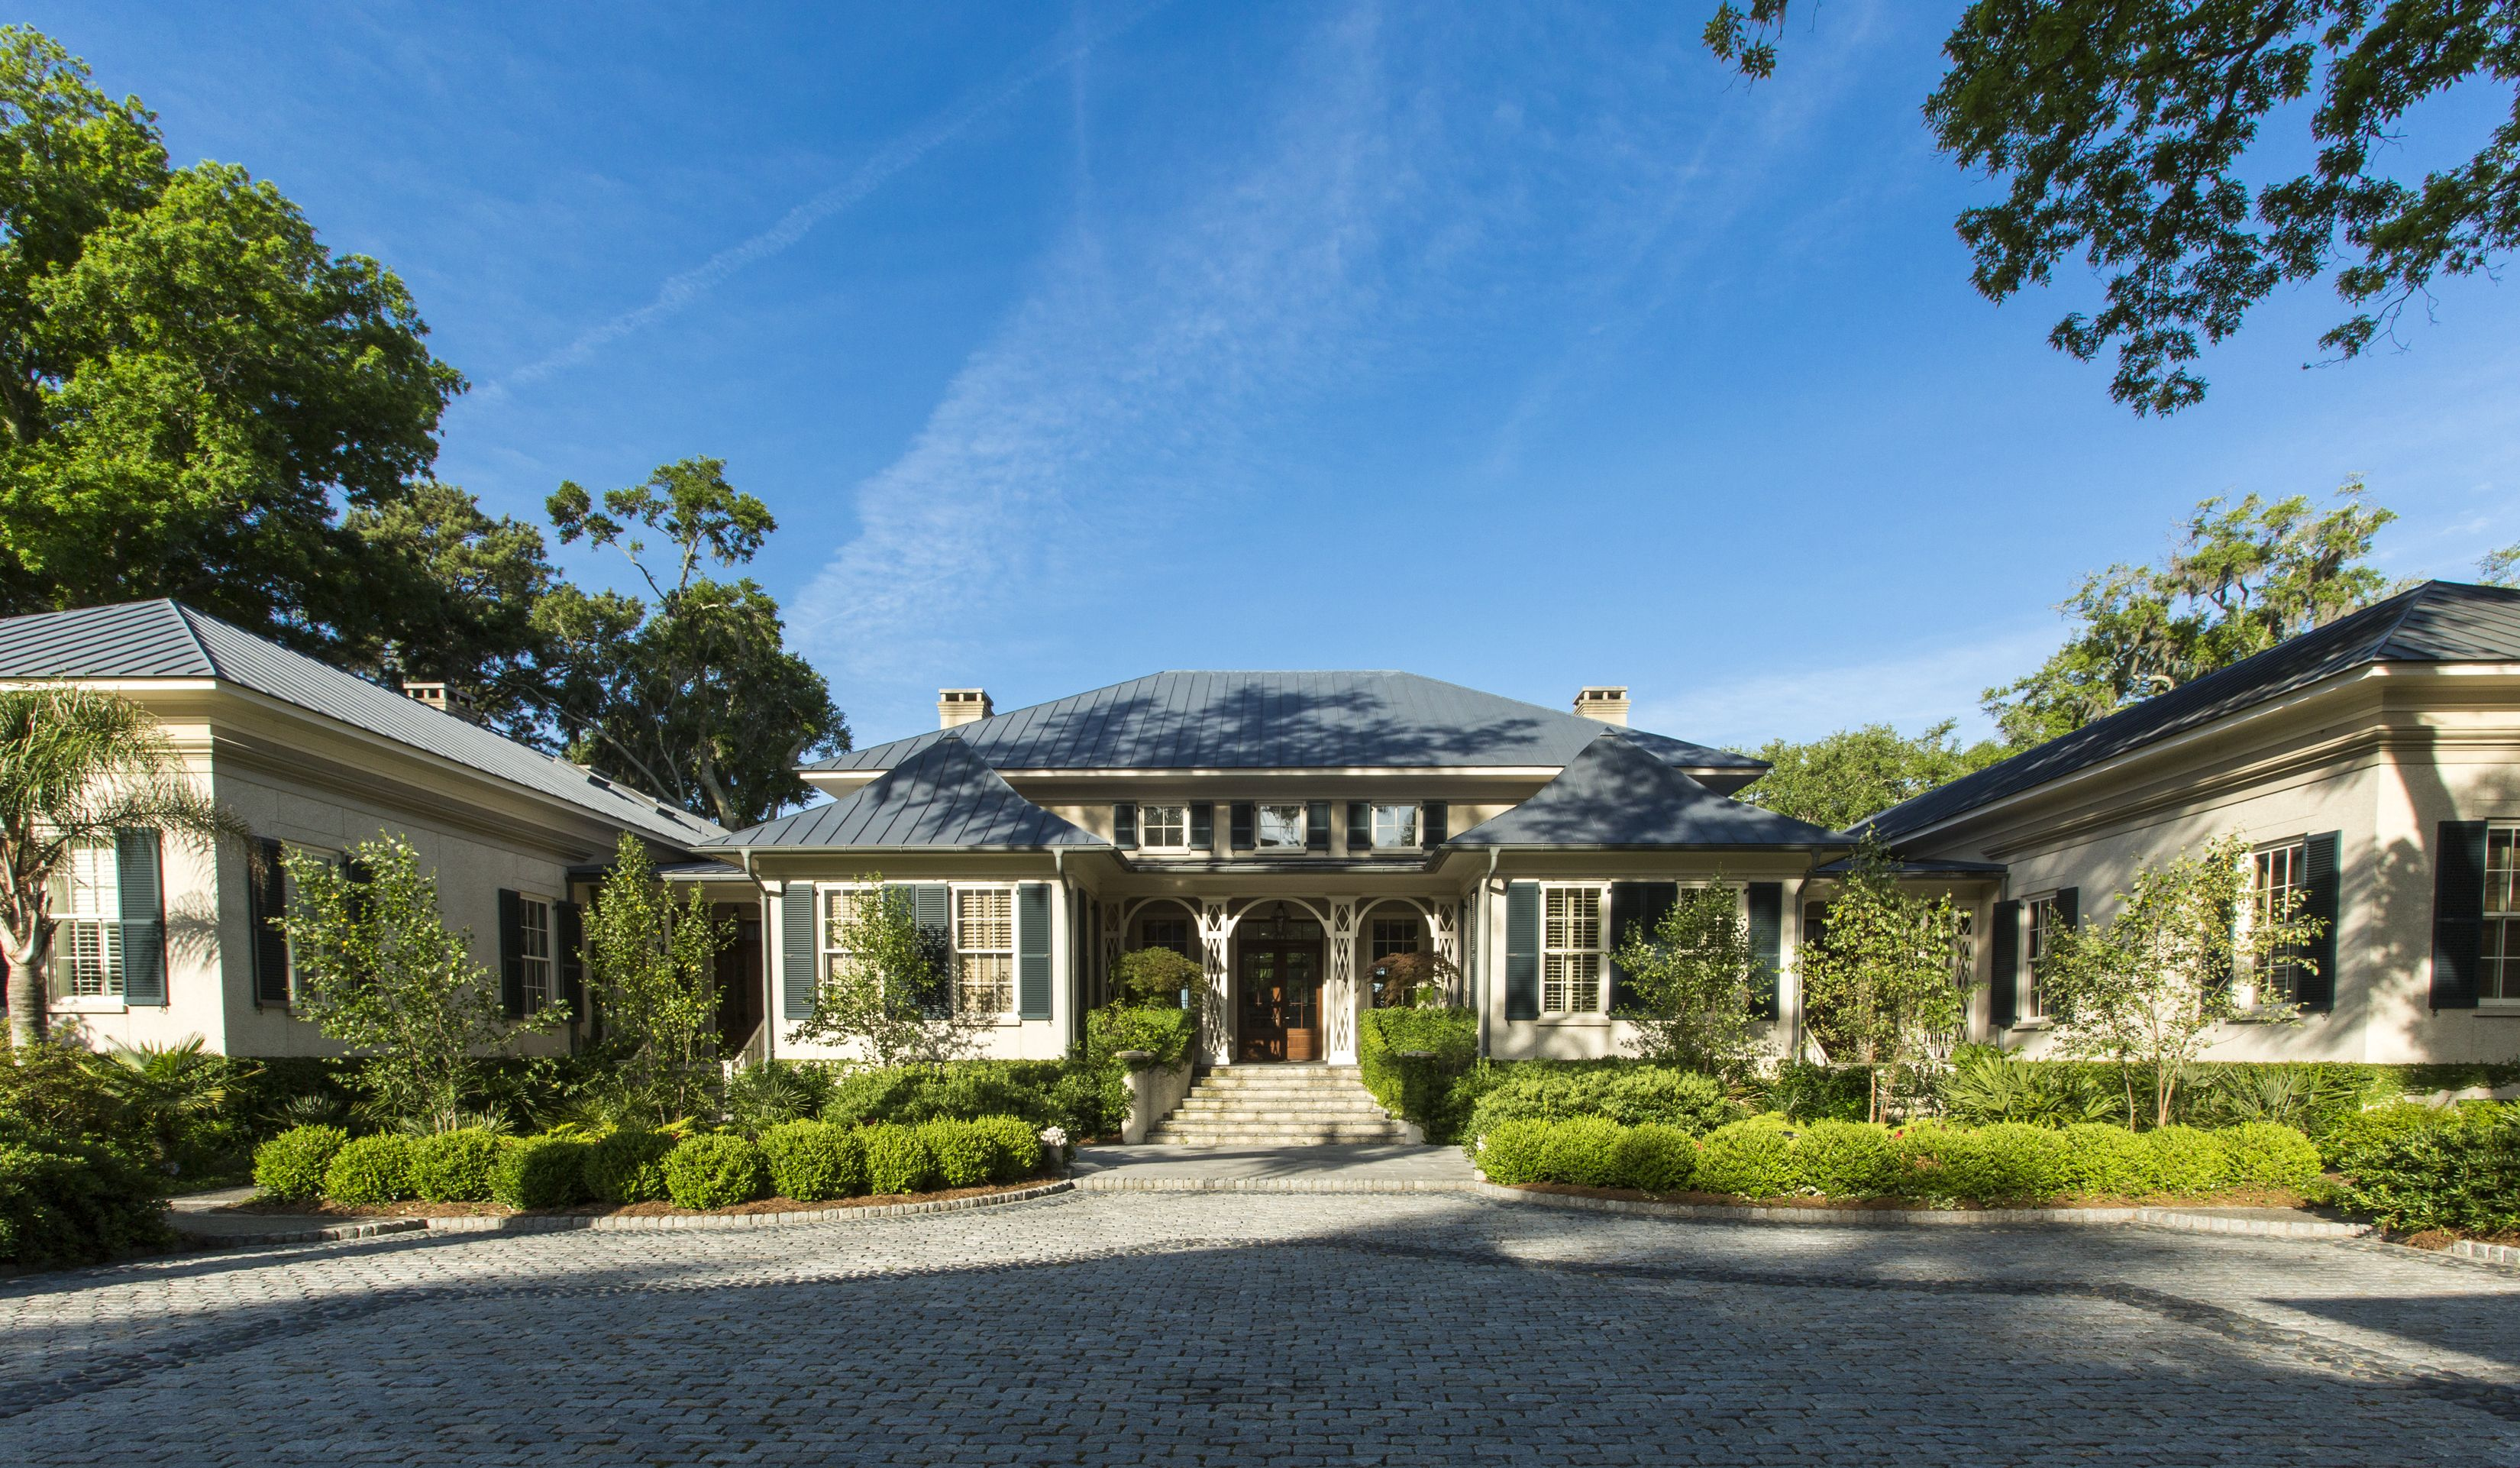 The Most Significant Offering In Savannah Georgia This Estate Is